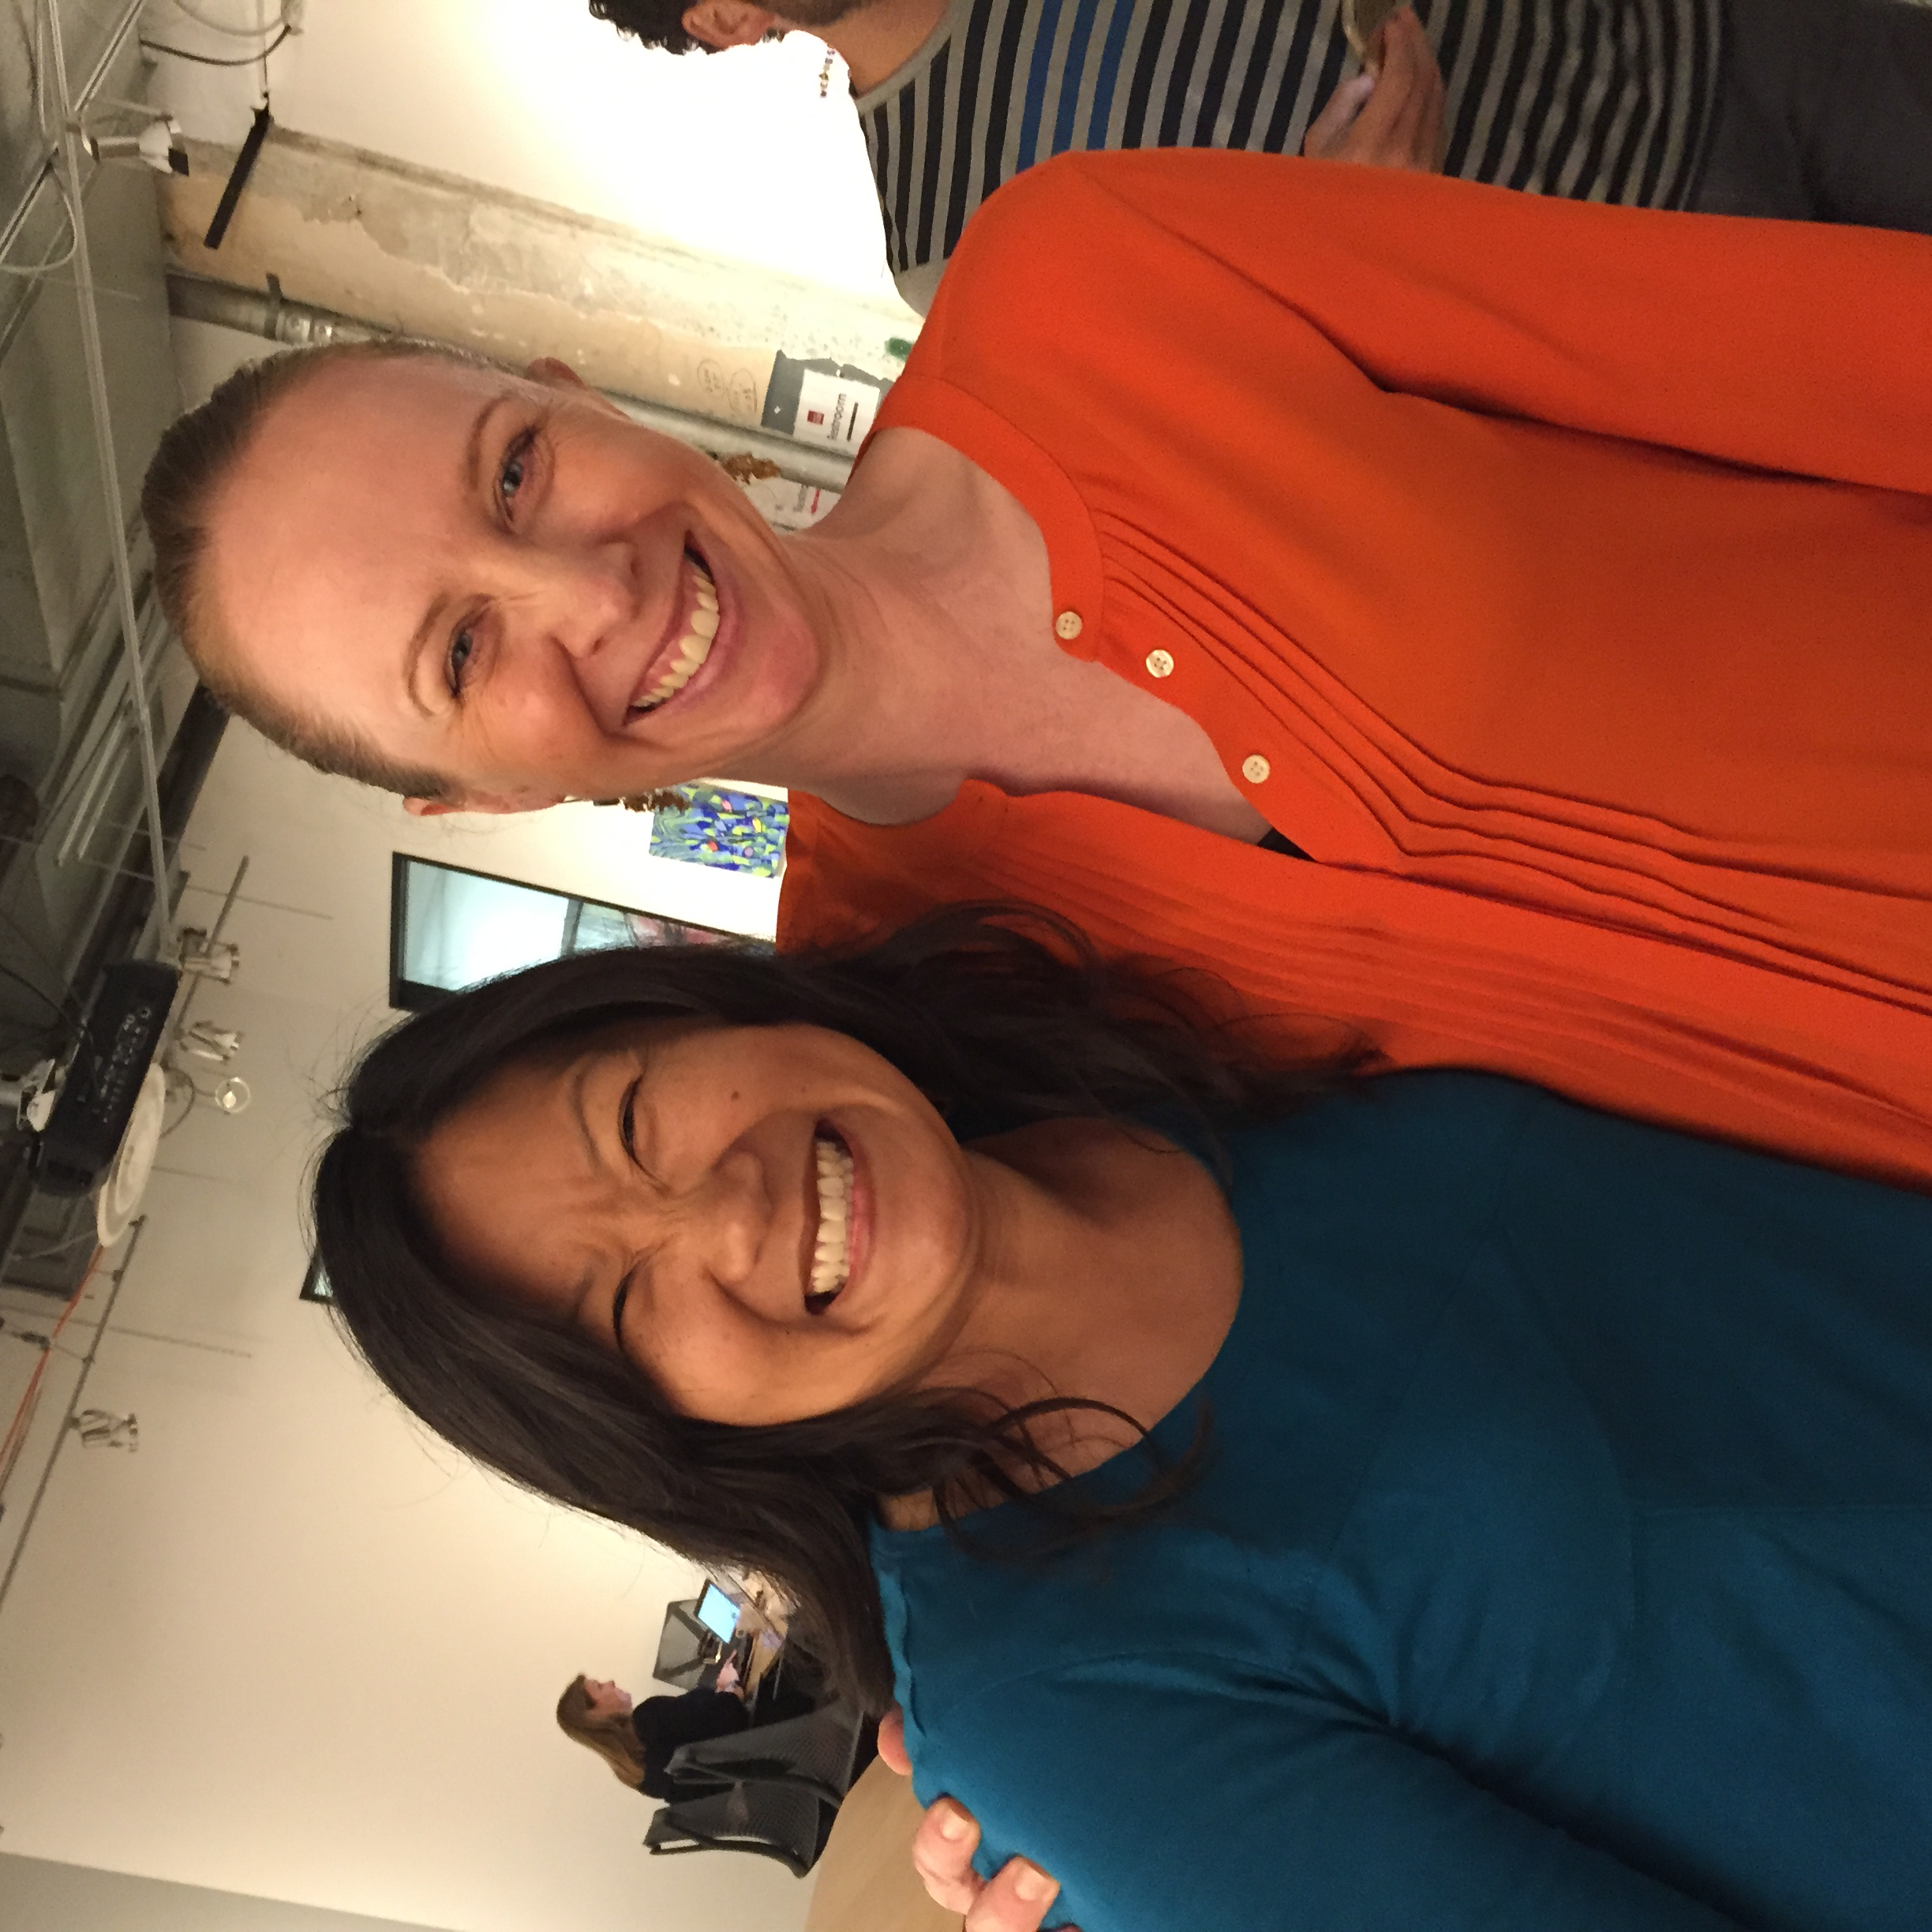 The photo requirement: snap a photo of the two Cabinet members who live in Berkeley.Thanks for representing the East Bay, Esther & Kate!